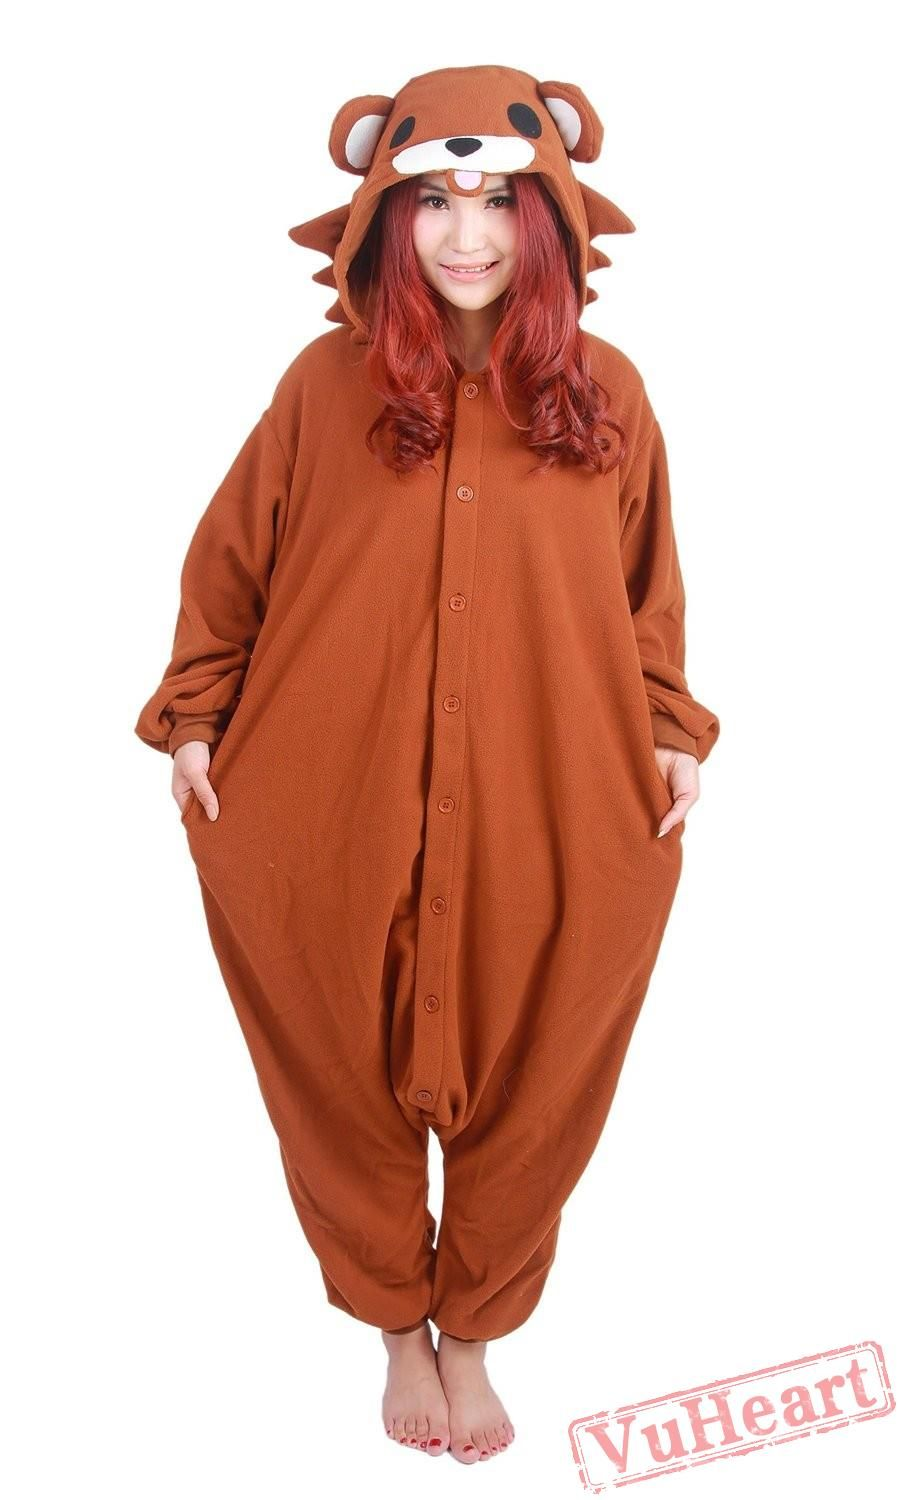 b5fa83e7bc3a Cartoon Brown Bear Kigurumi Onesies Pajamas Costumes for Women   Men ...